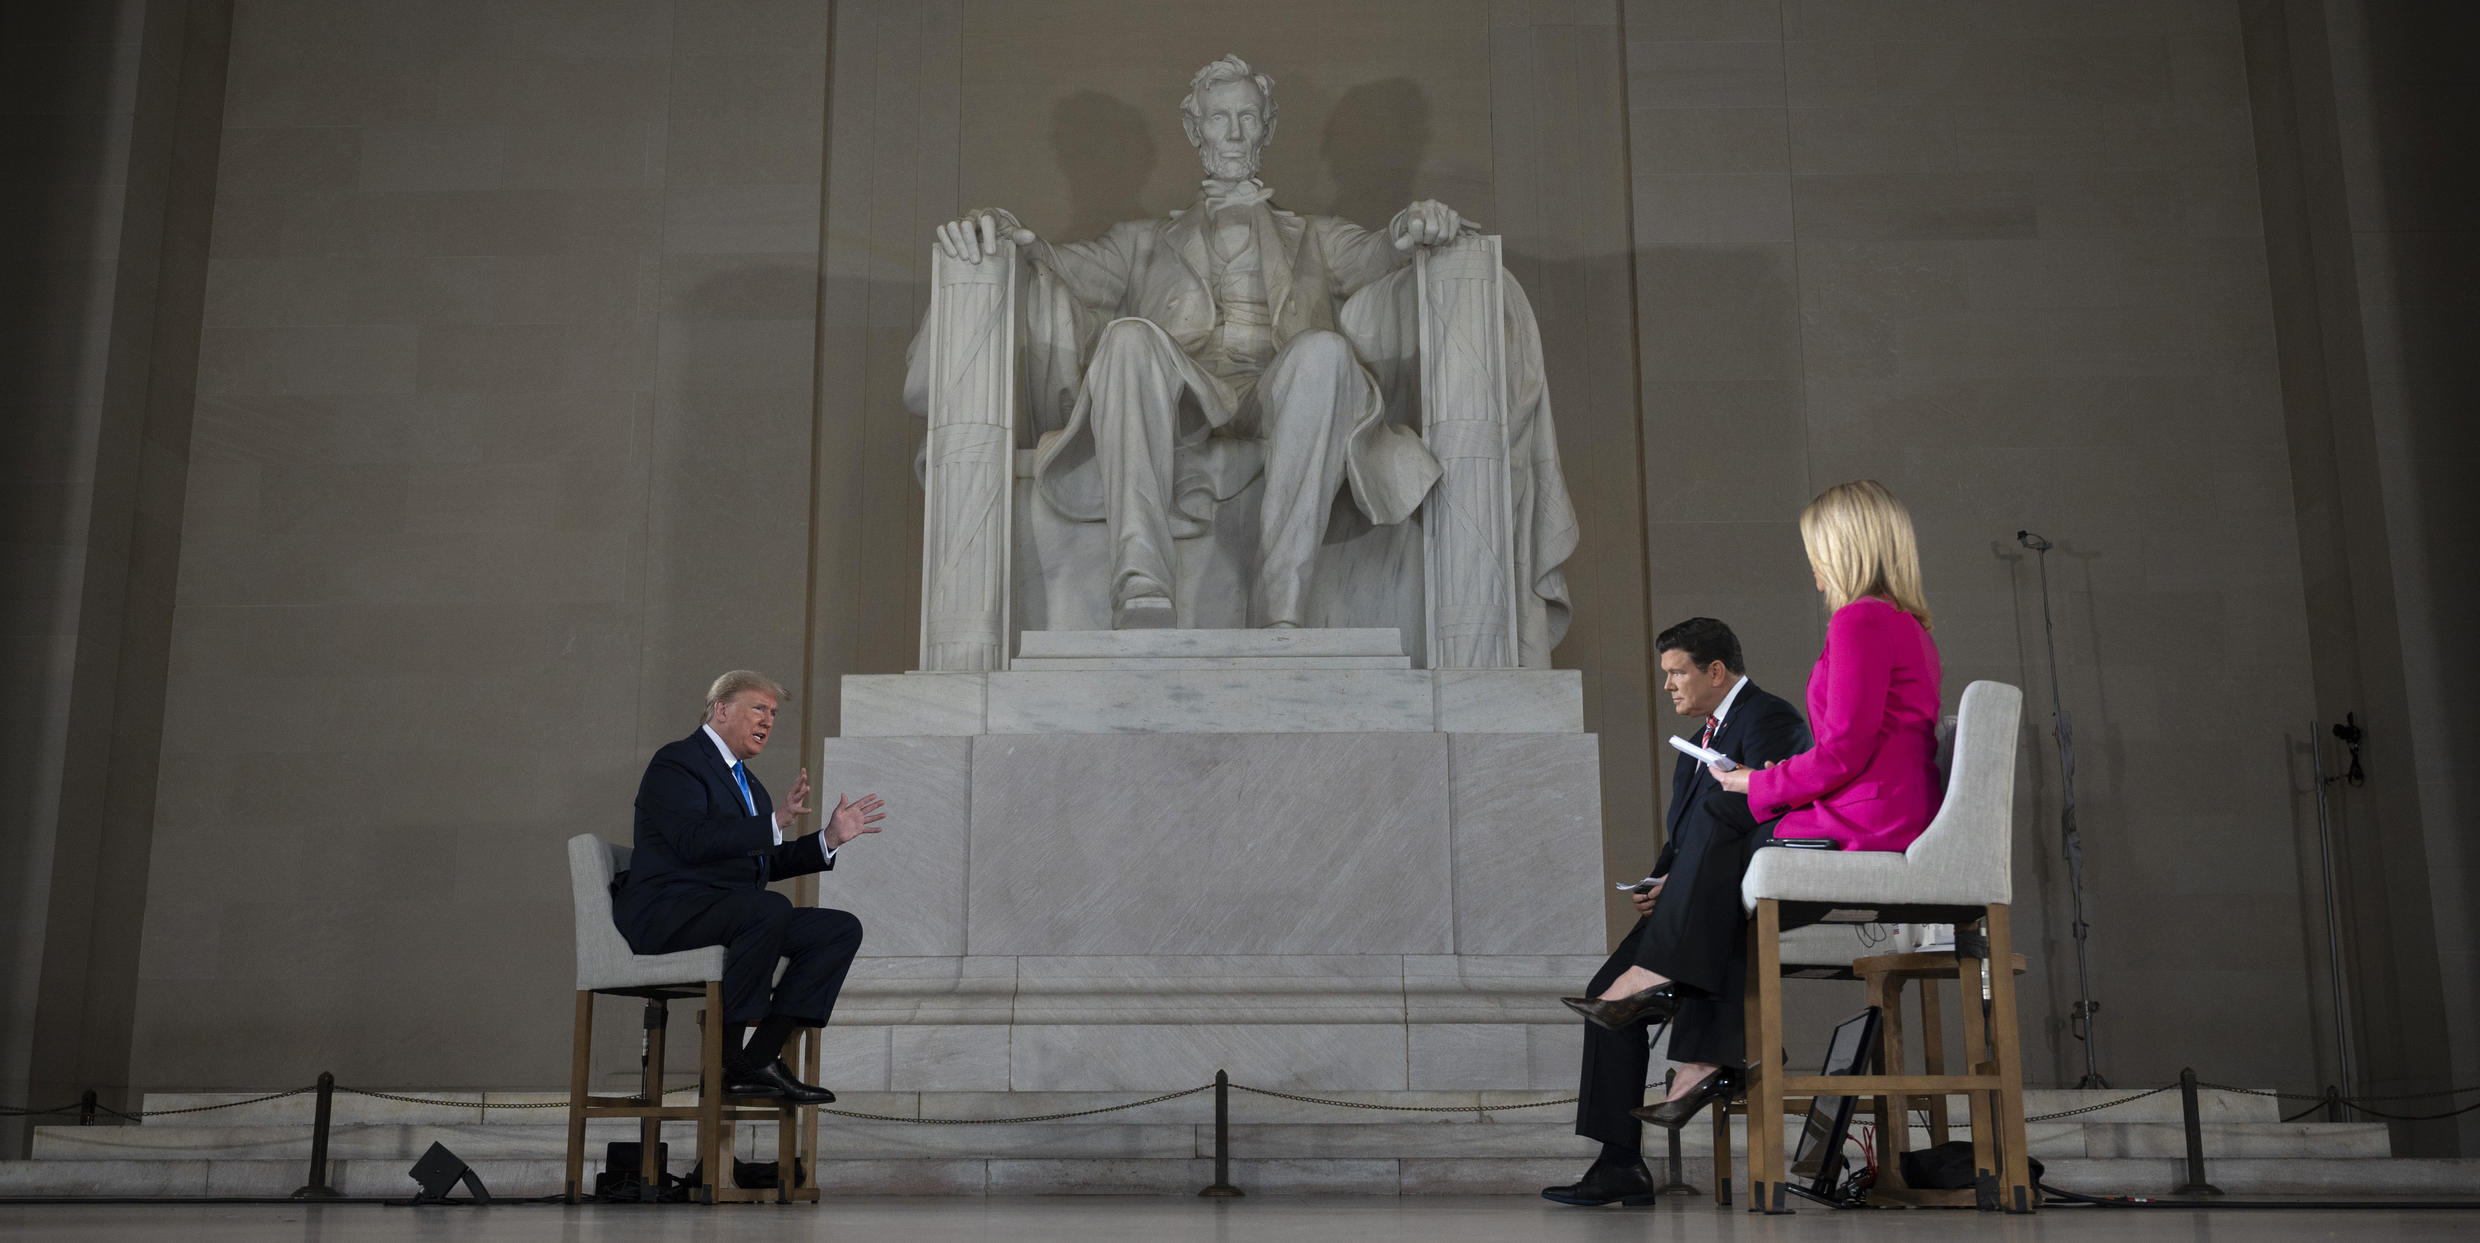 US President Donald Trump went to the Lincoln Memorial to relaunch his campaign and call for an end to the pandemic lockdown